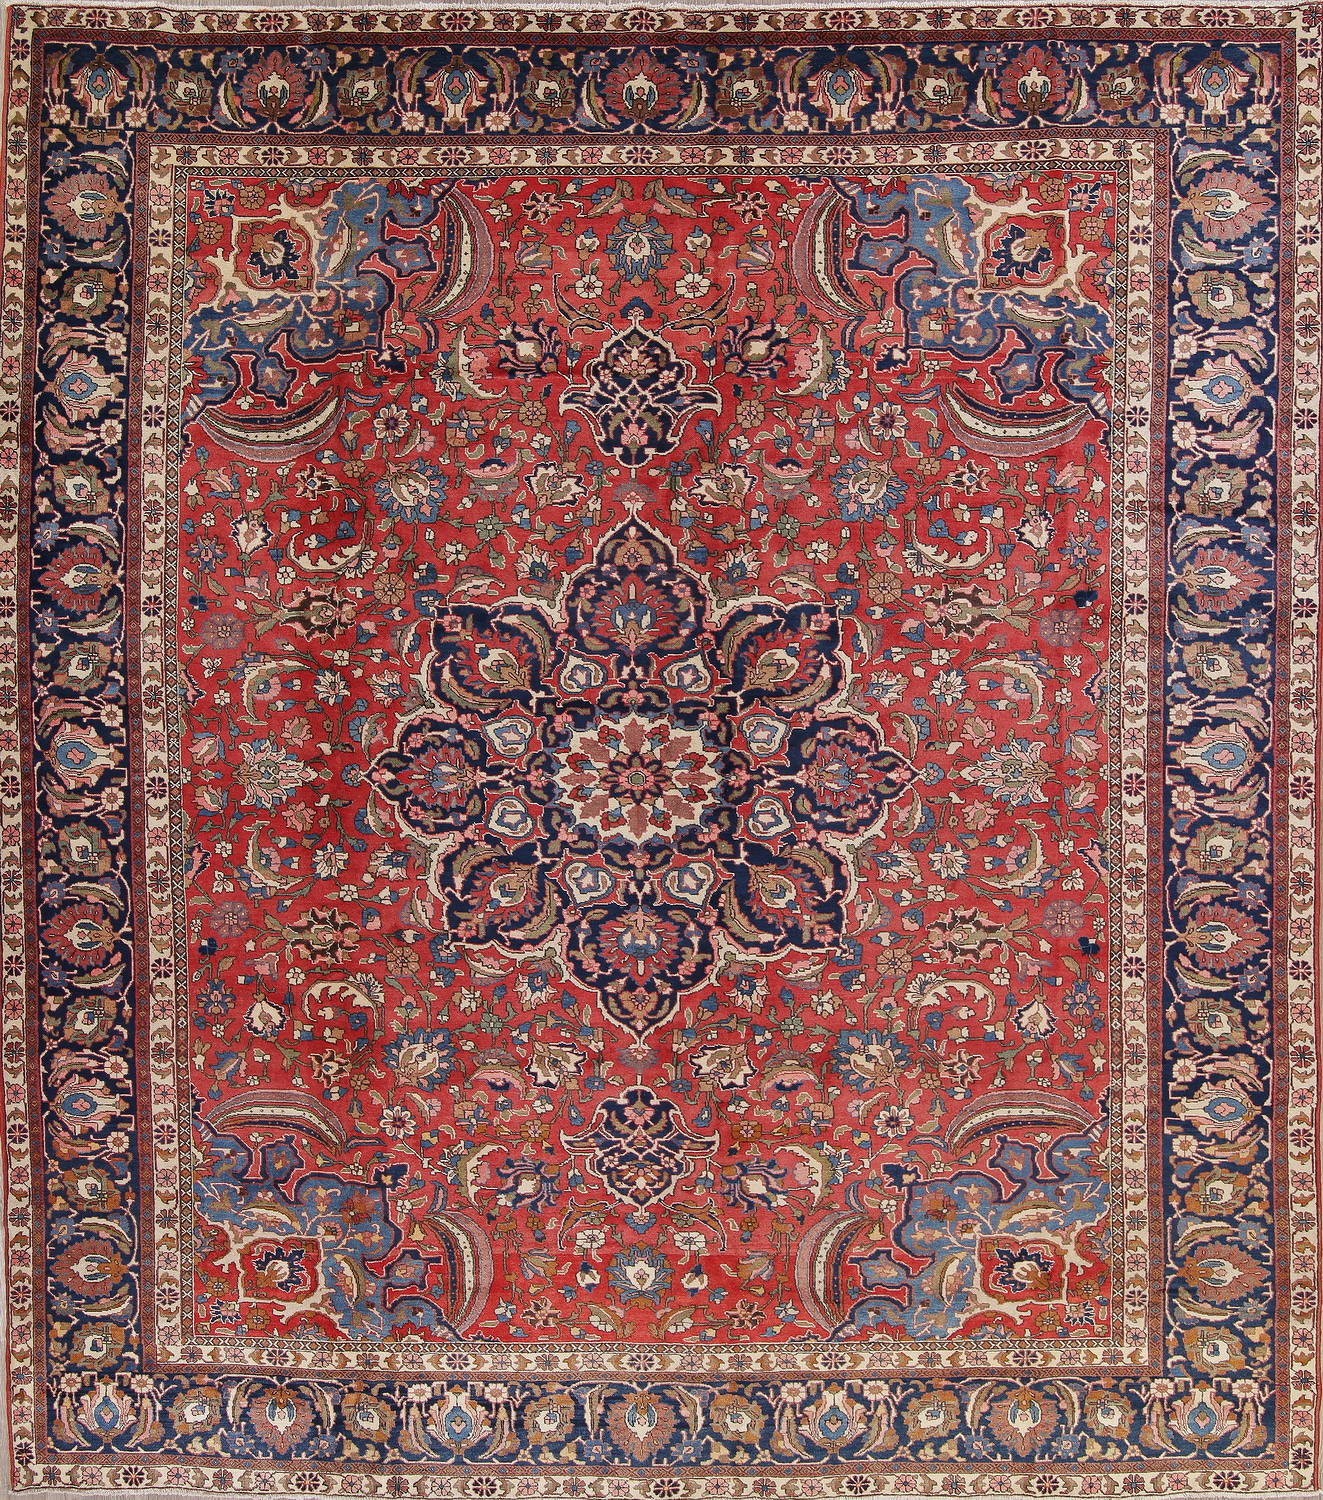 Antique Vegetable Dye Bakhtiari Persian Area Rug 12x14 image 1